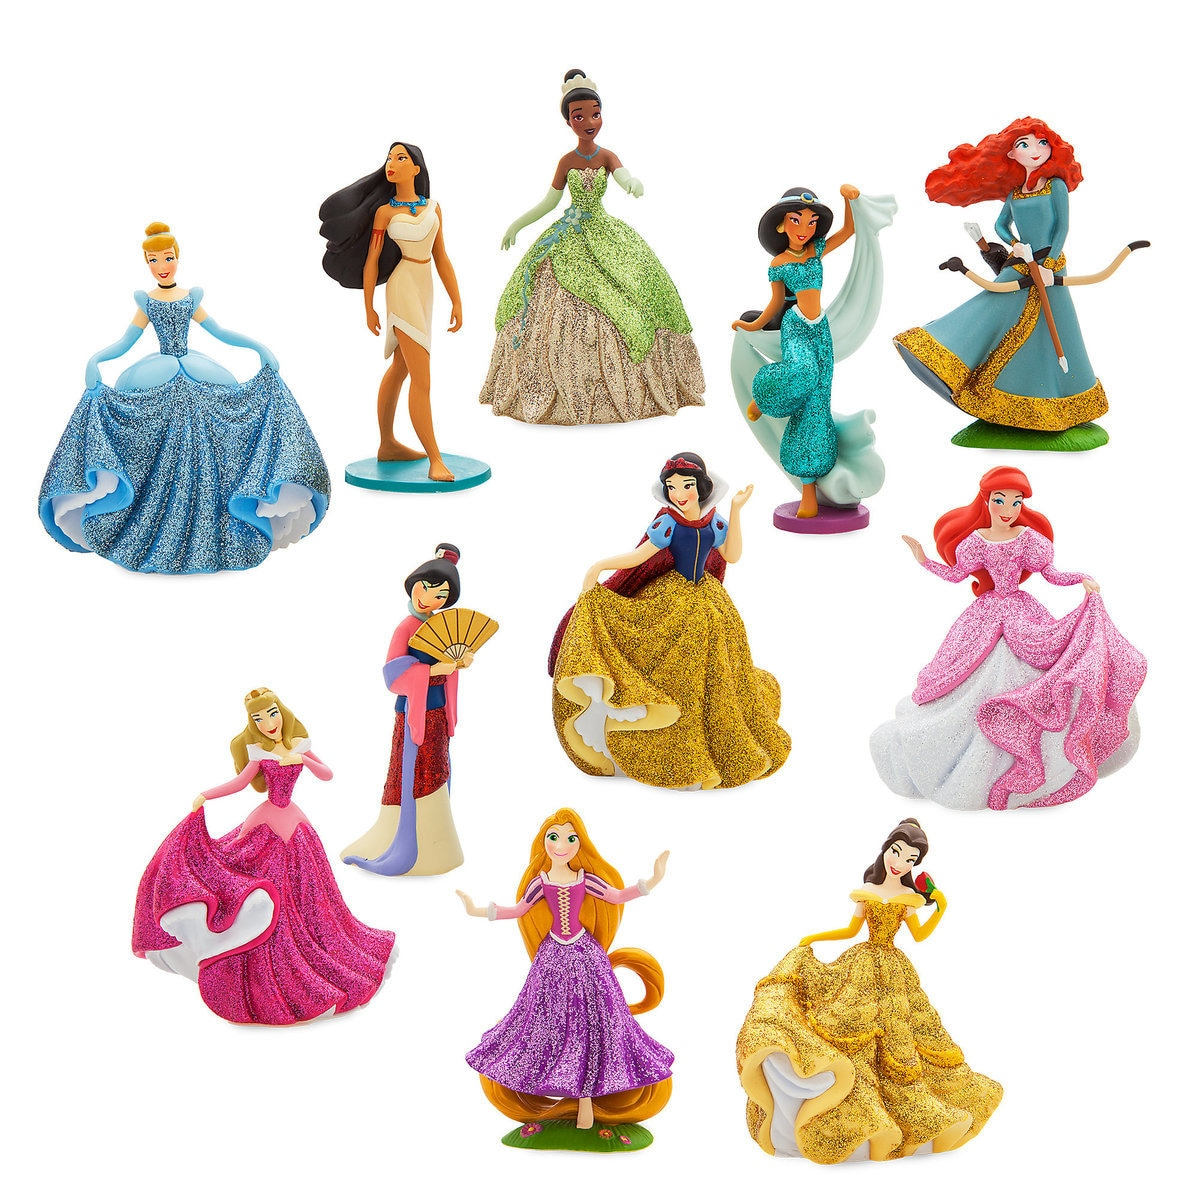 ac9e3c5776c Product Image of Disney Princess Deluxe Figure Playset -   Happily Ever  After